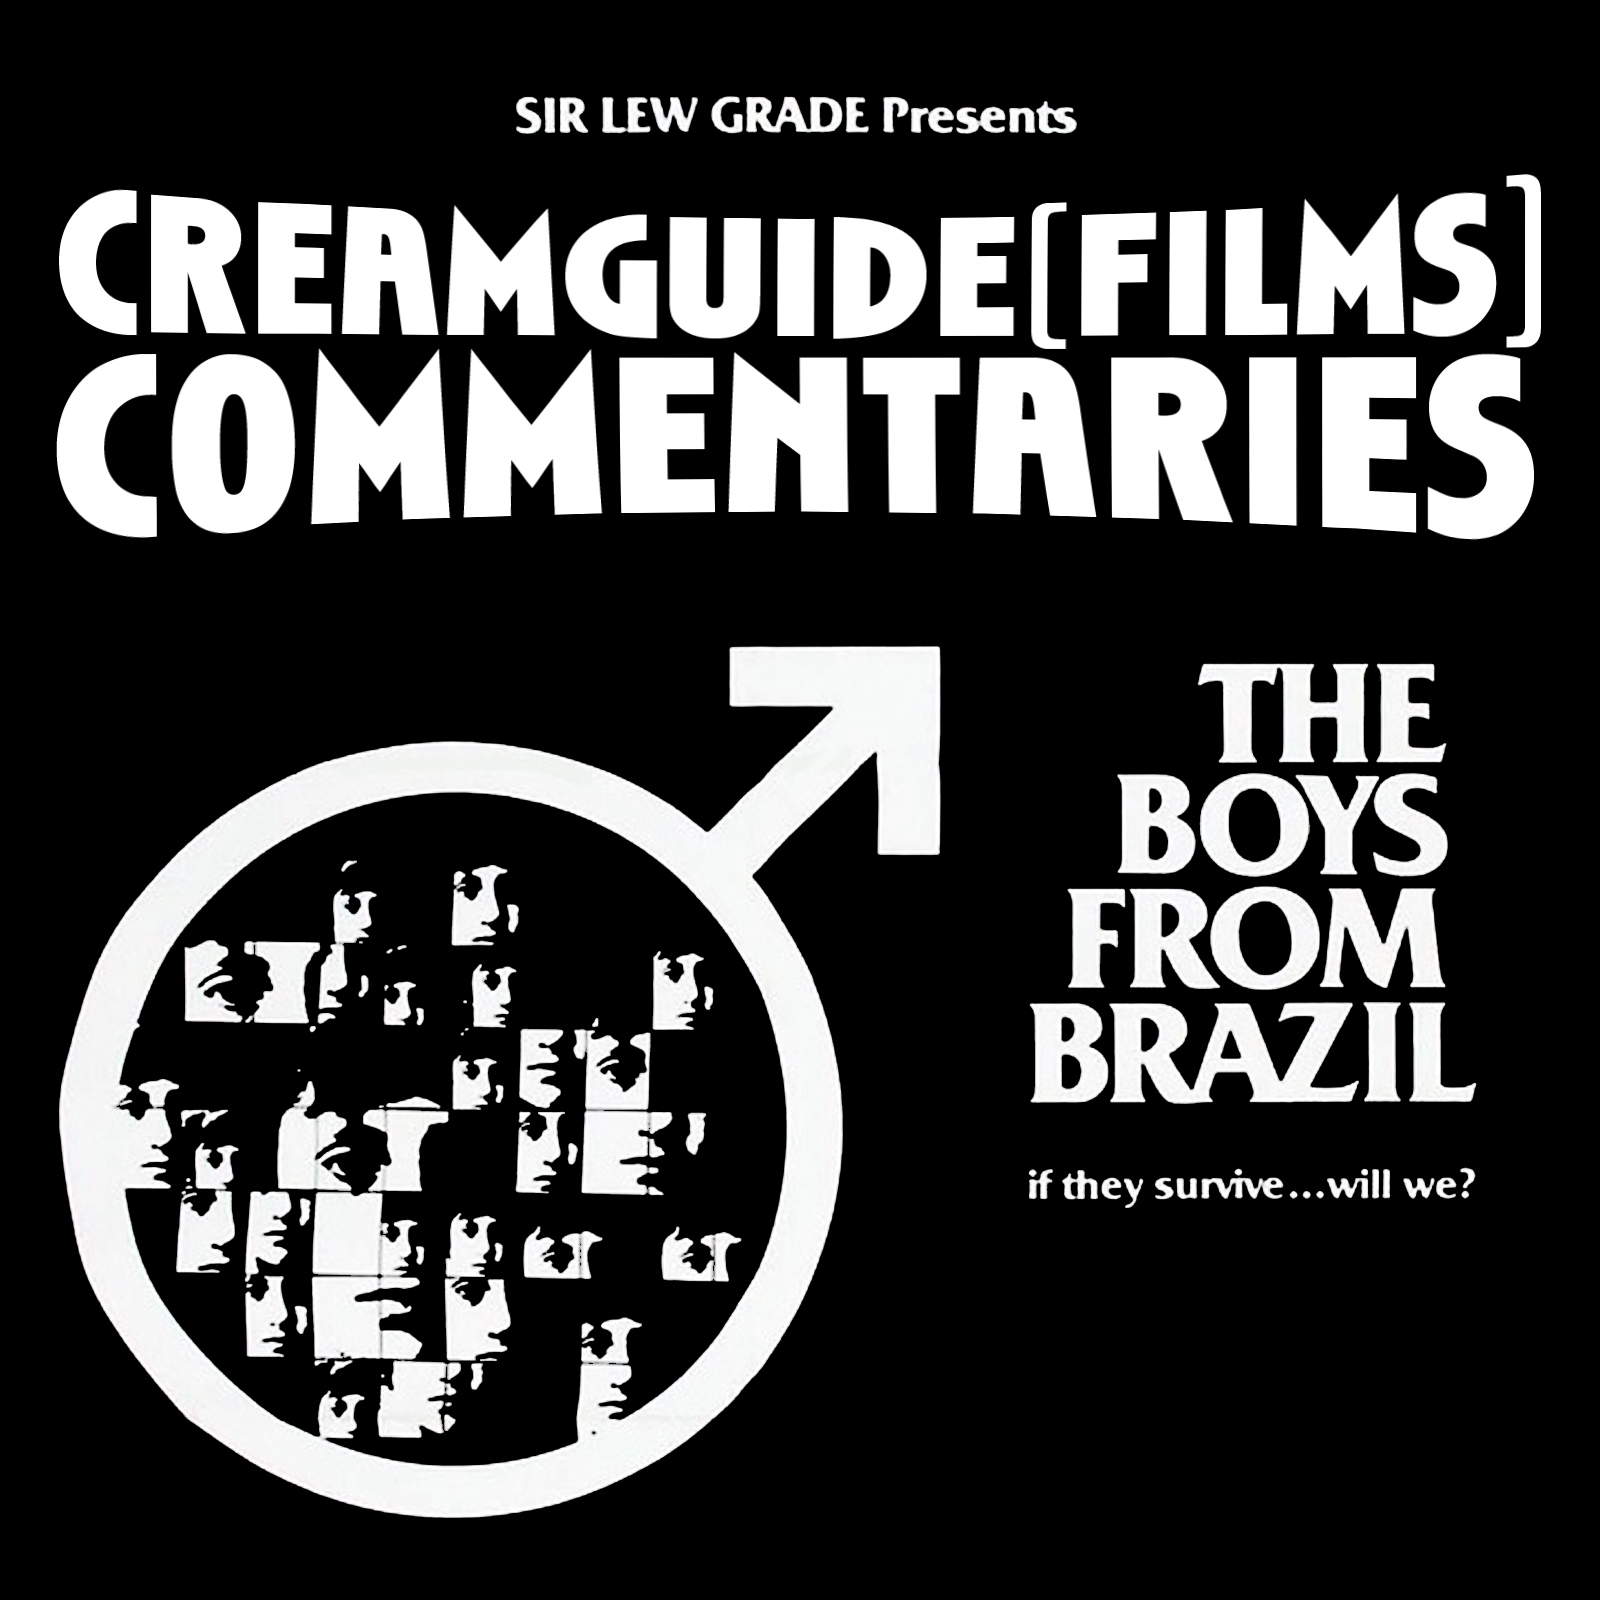 Creamguide (Films) Commentaries: The Boys From Brazil